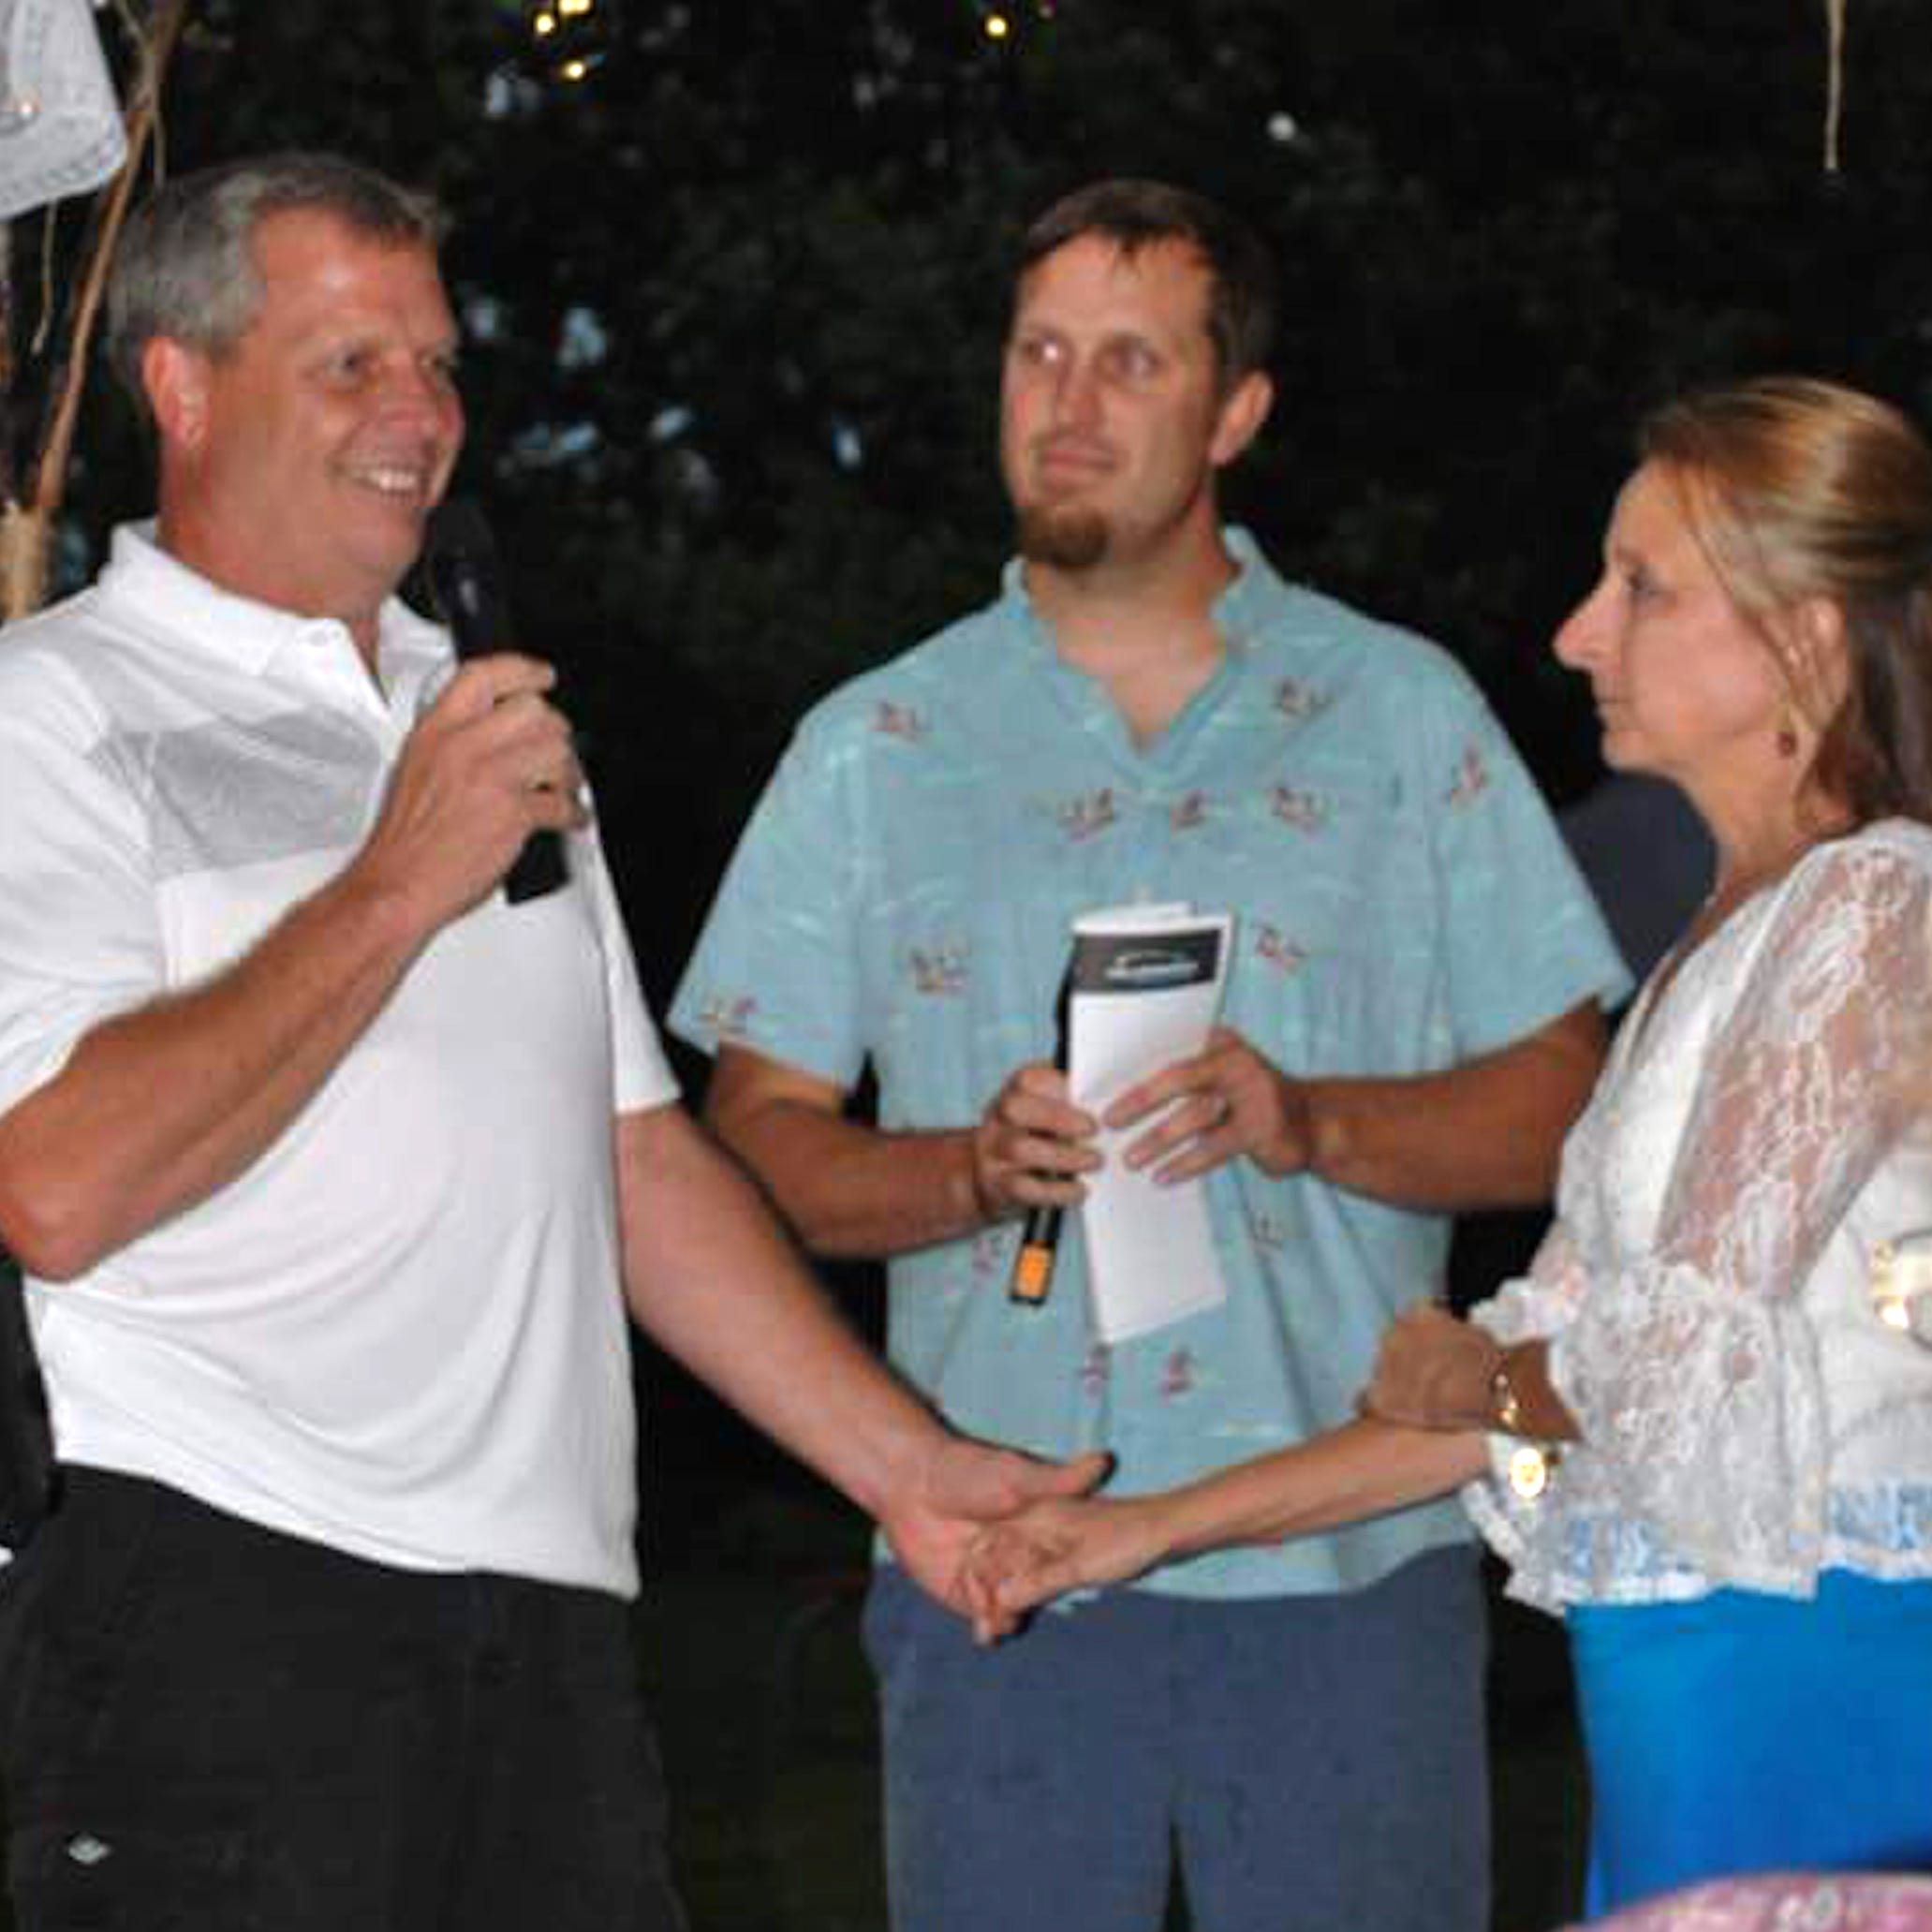 Martin Schmidt, who was ordained online, officiates at the wedding of his birth parents, Dave Lindgren and Michele Newman, in the yard of their Marshfield home on Aug. 4.